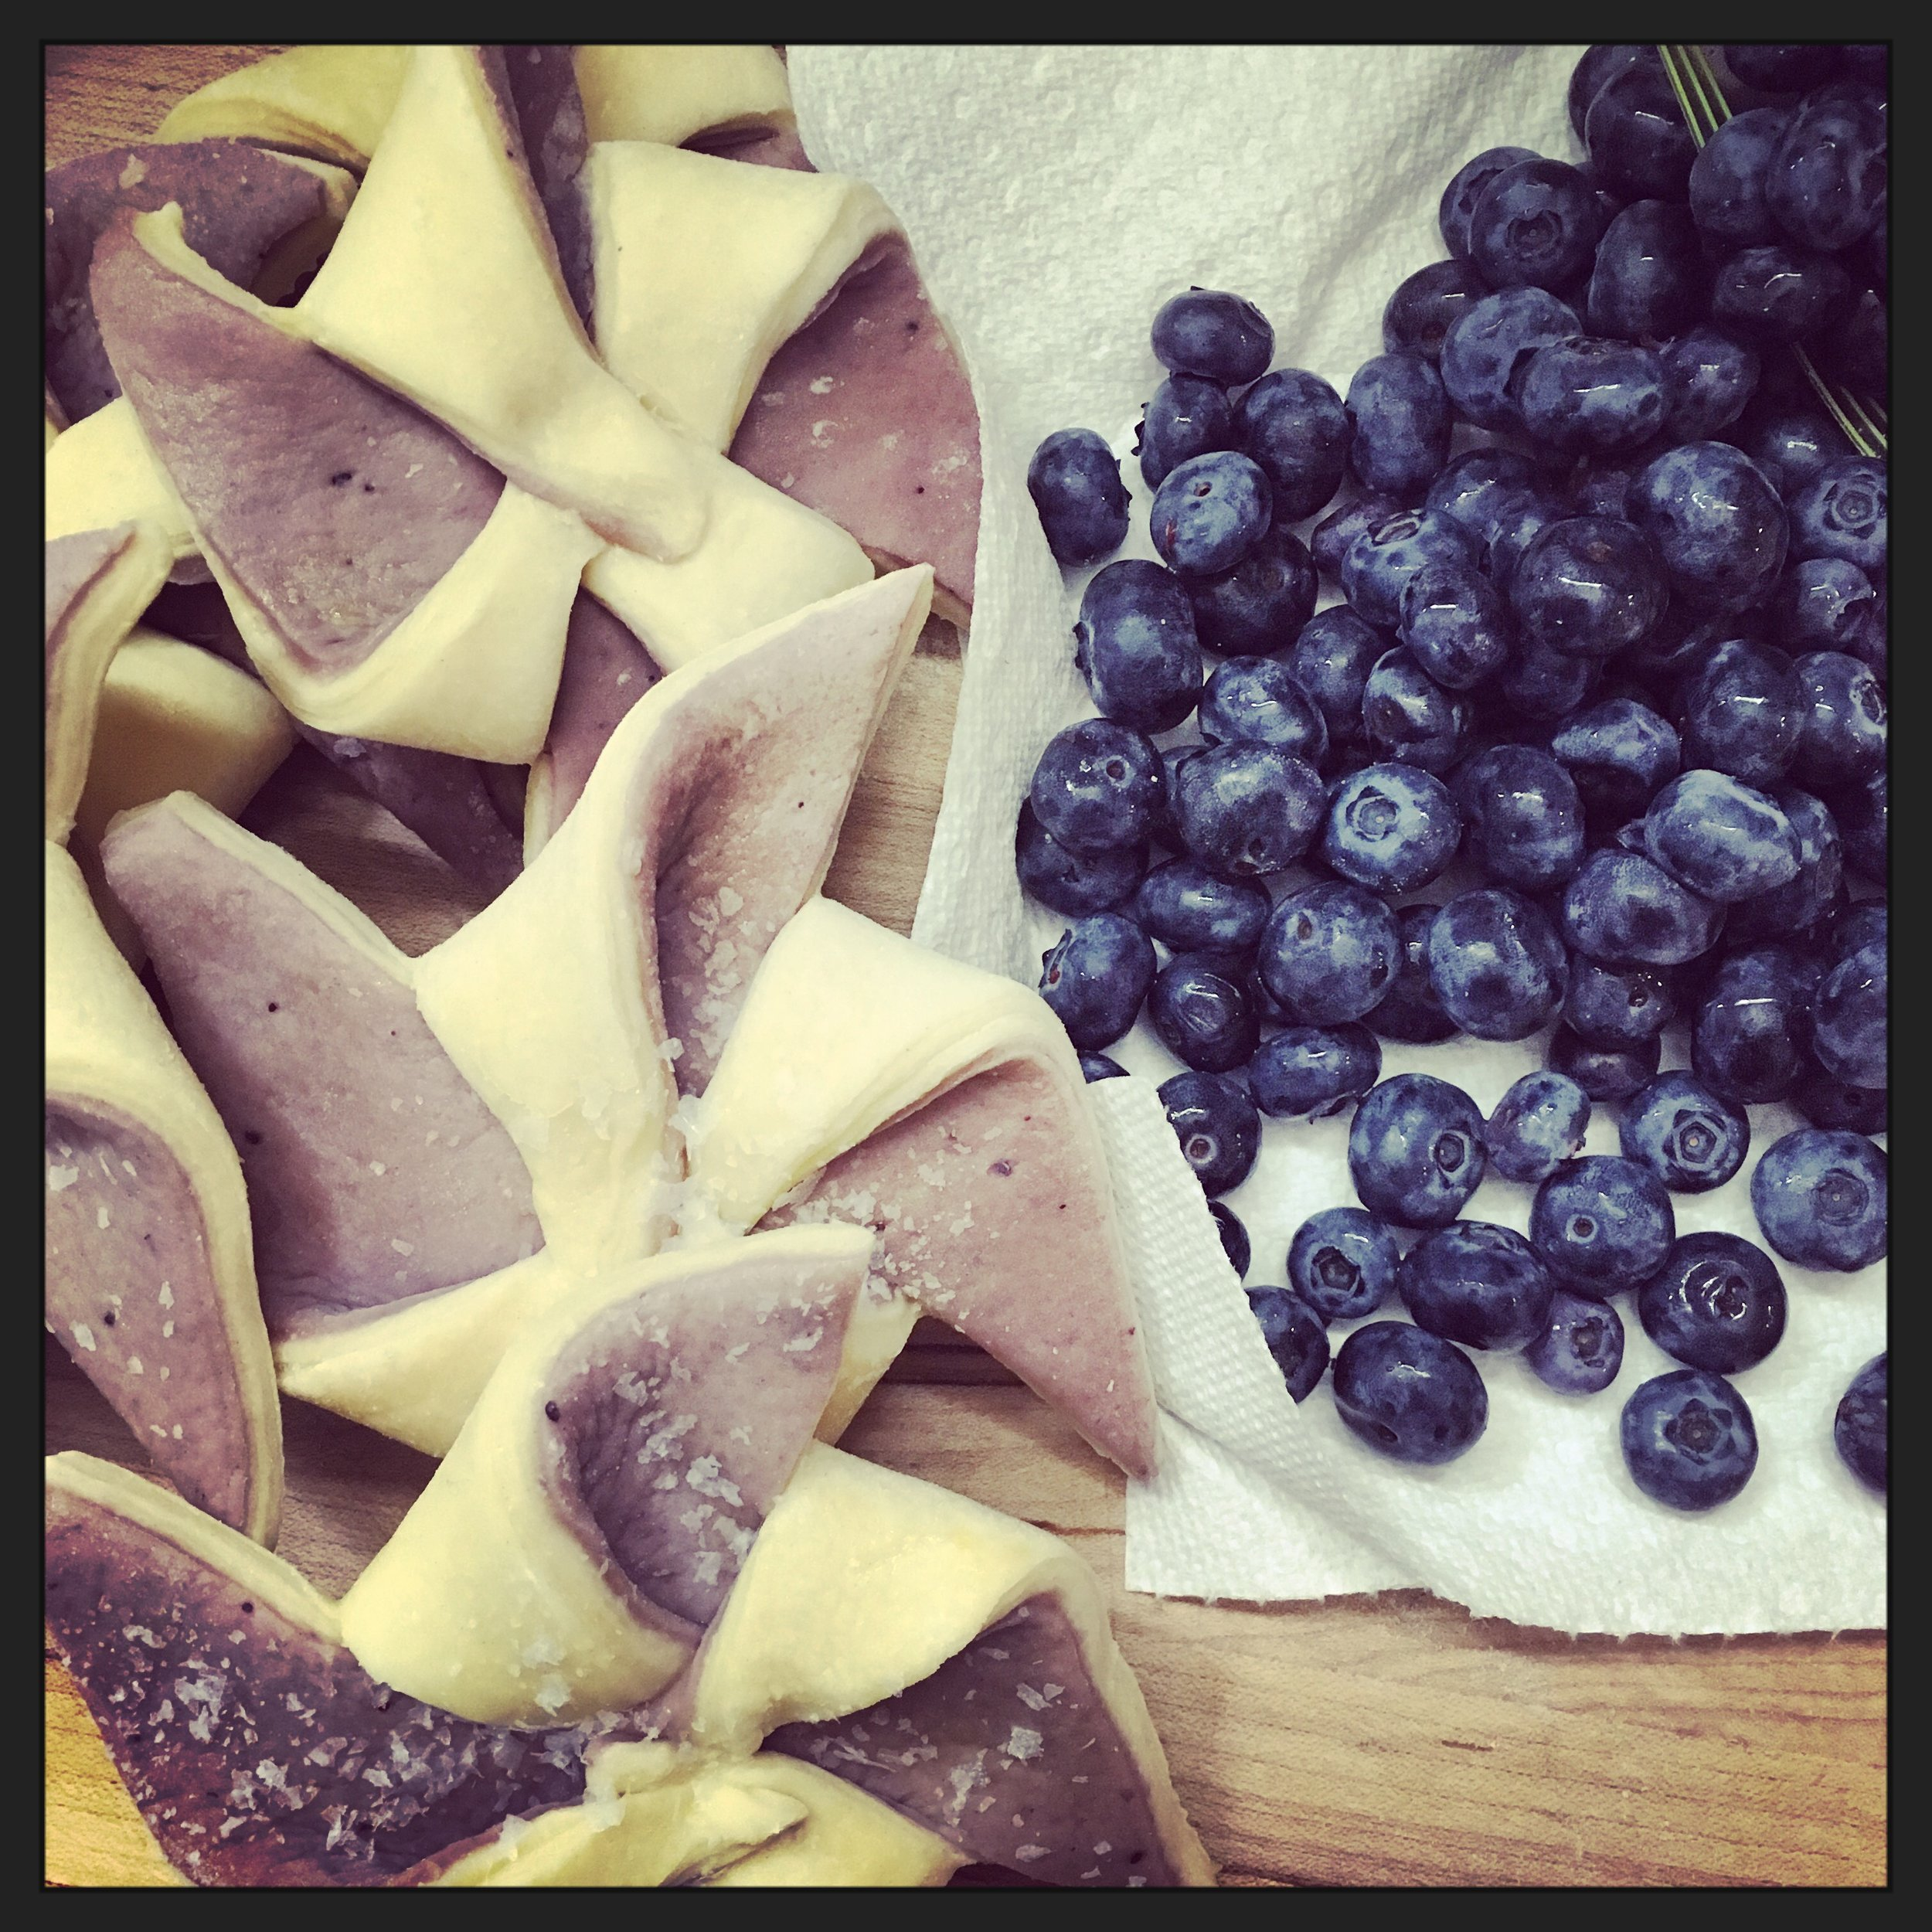 Blueberries are once again the feature this week in croissants going to farmers' markets this week, including the beautiful bi-color pinwheel croissants colored by blueberry jam! Come find one this week!